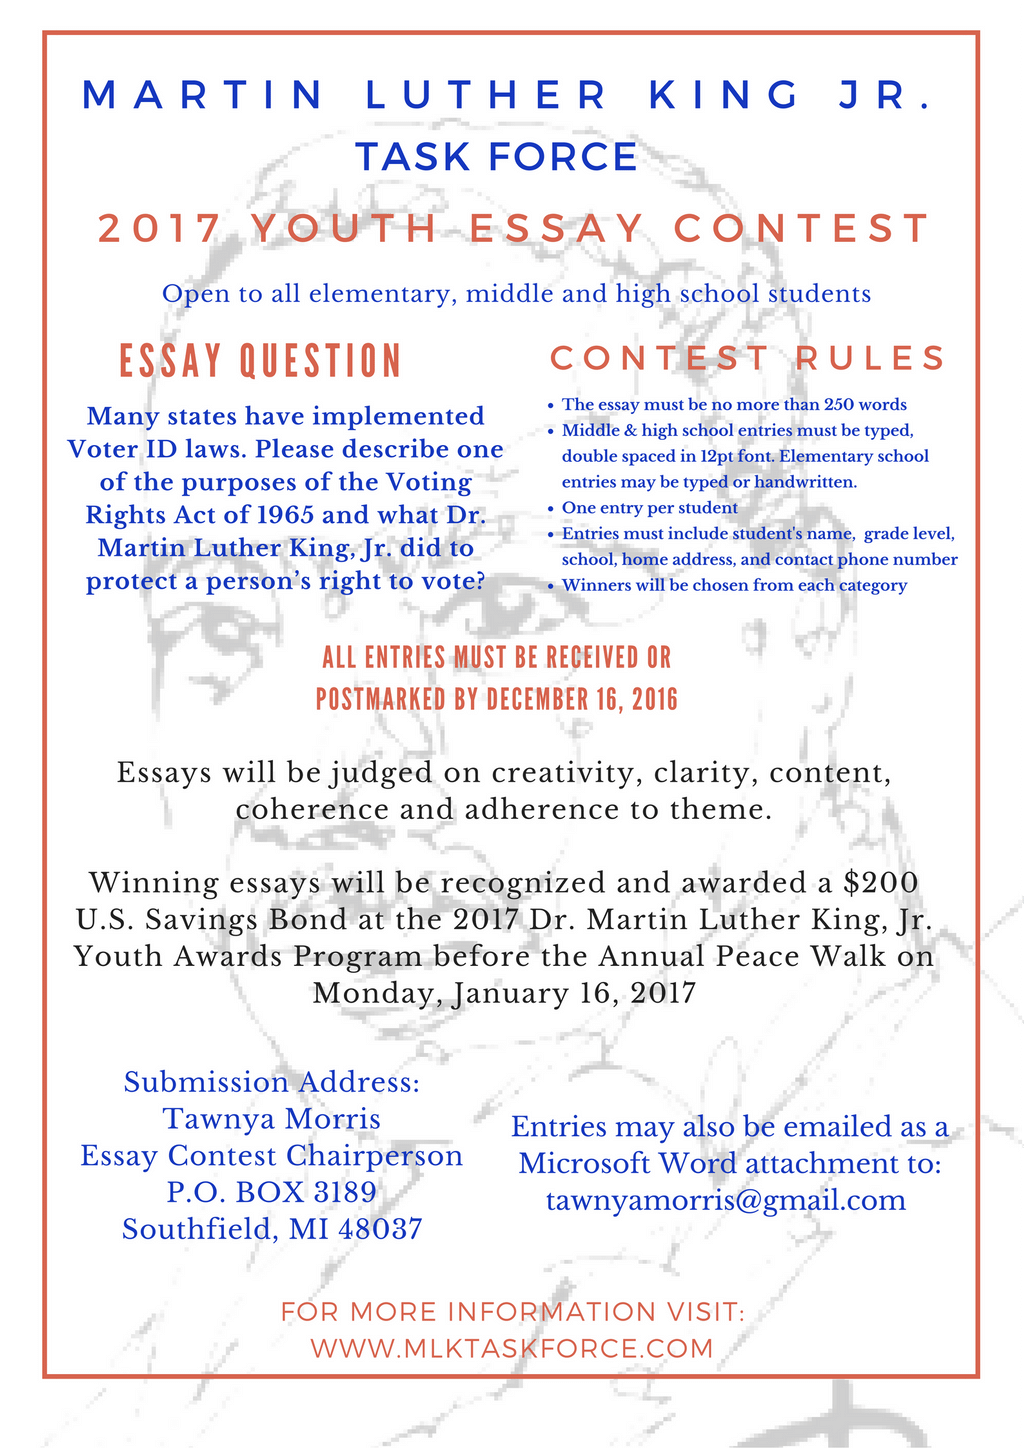 mlk essay essay martin luther king i have a dream essay essay  dr martin luther king jr task force inc the flyer for our 2017 youth essay contest